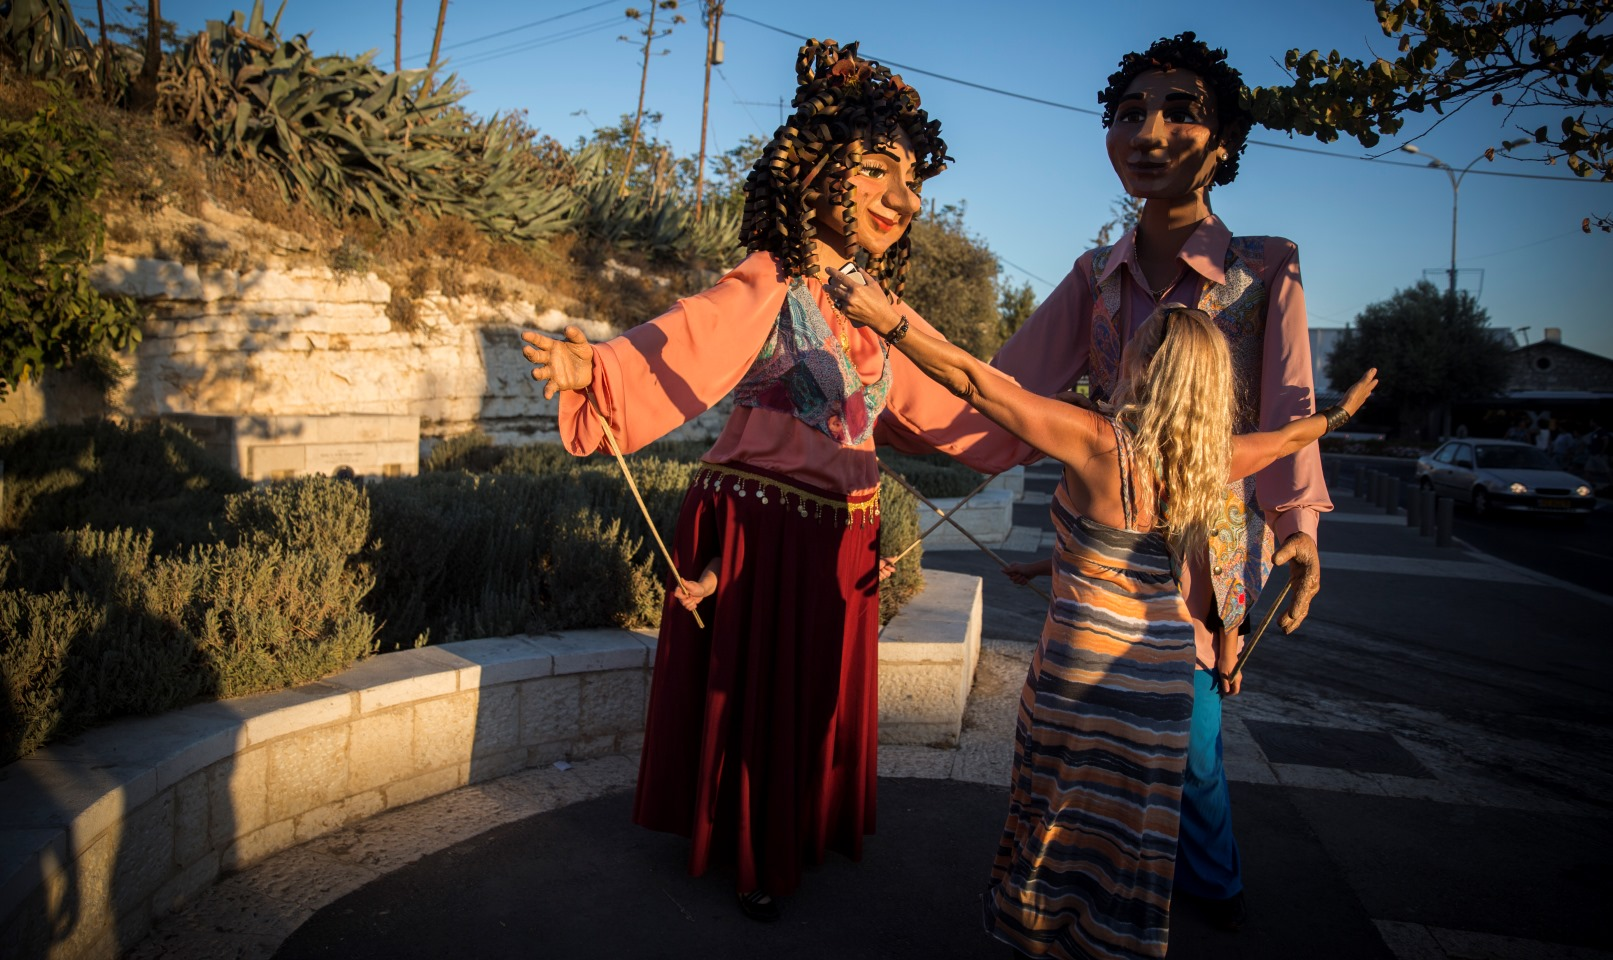 The International Puppet Theater Festival last year in Jerusalem featured human puppets welcoming people off the streets. Photo by Hadas Parush/FLASH90